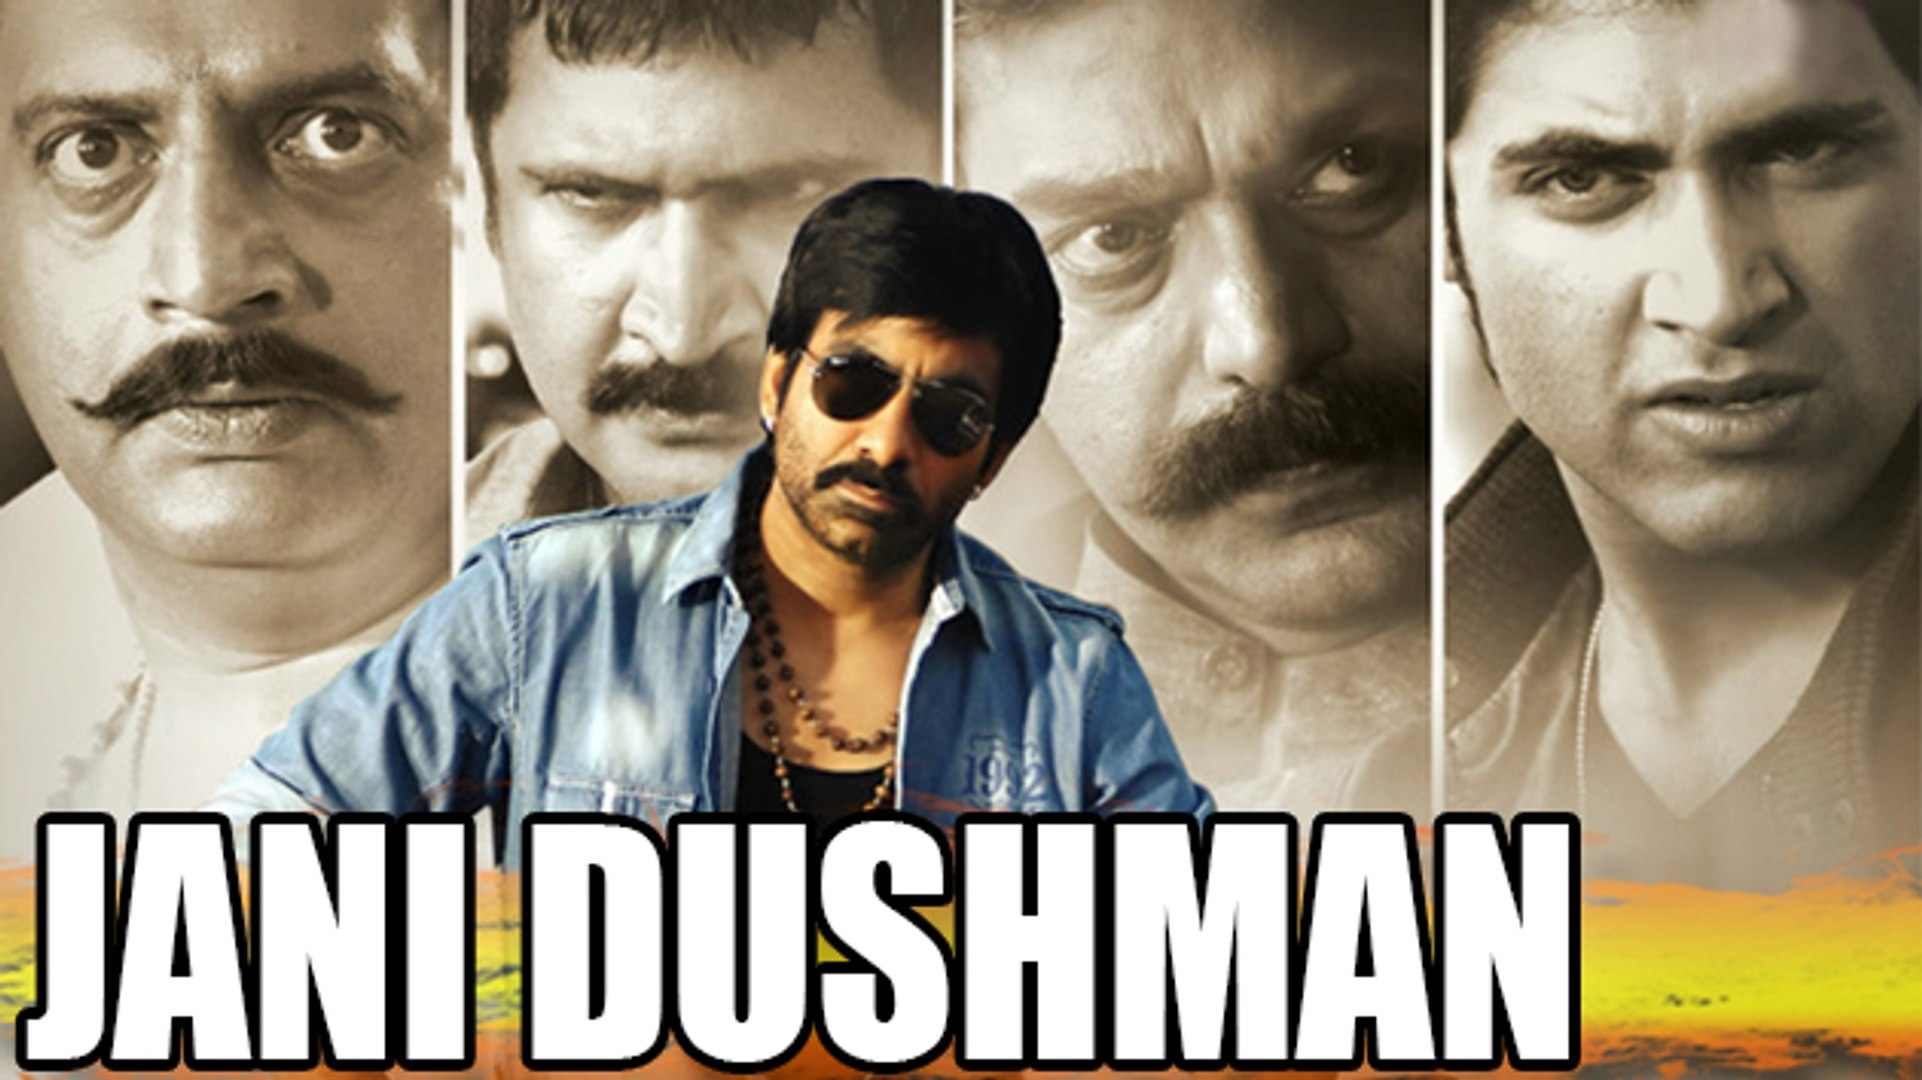 Jani Dushman (Balupu) Hindi Dubbed Full Movie - Ravi Teja, Shruti Haasan,  Prakash Raj